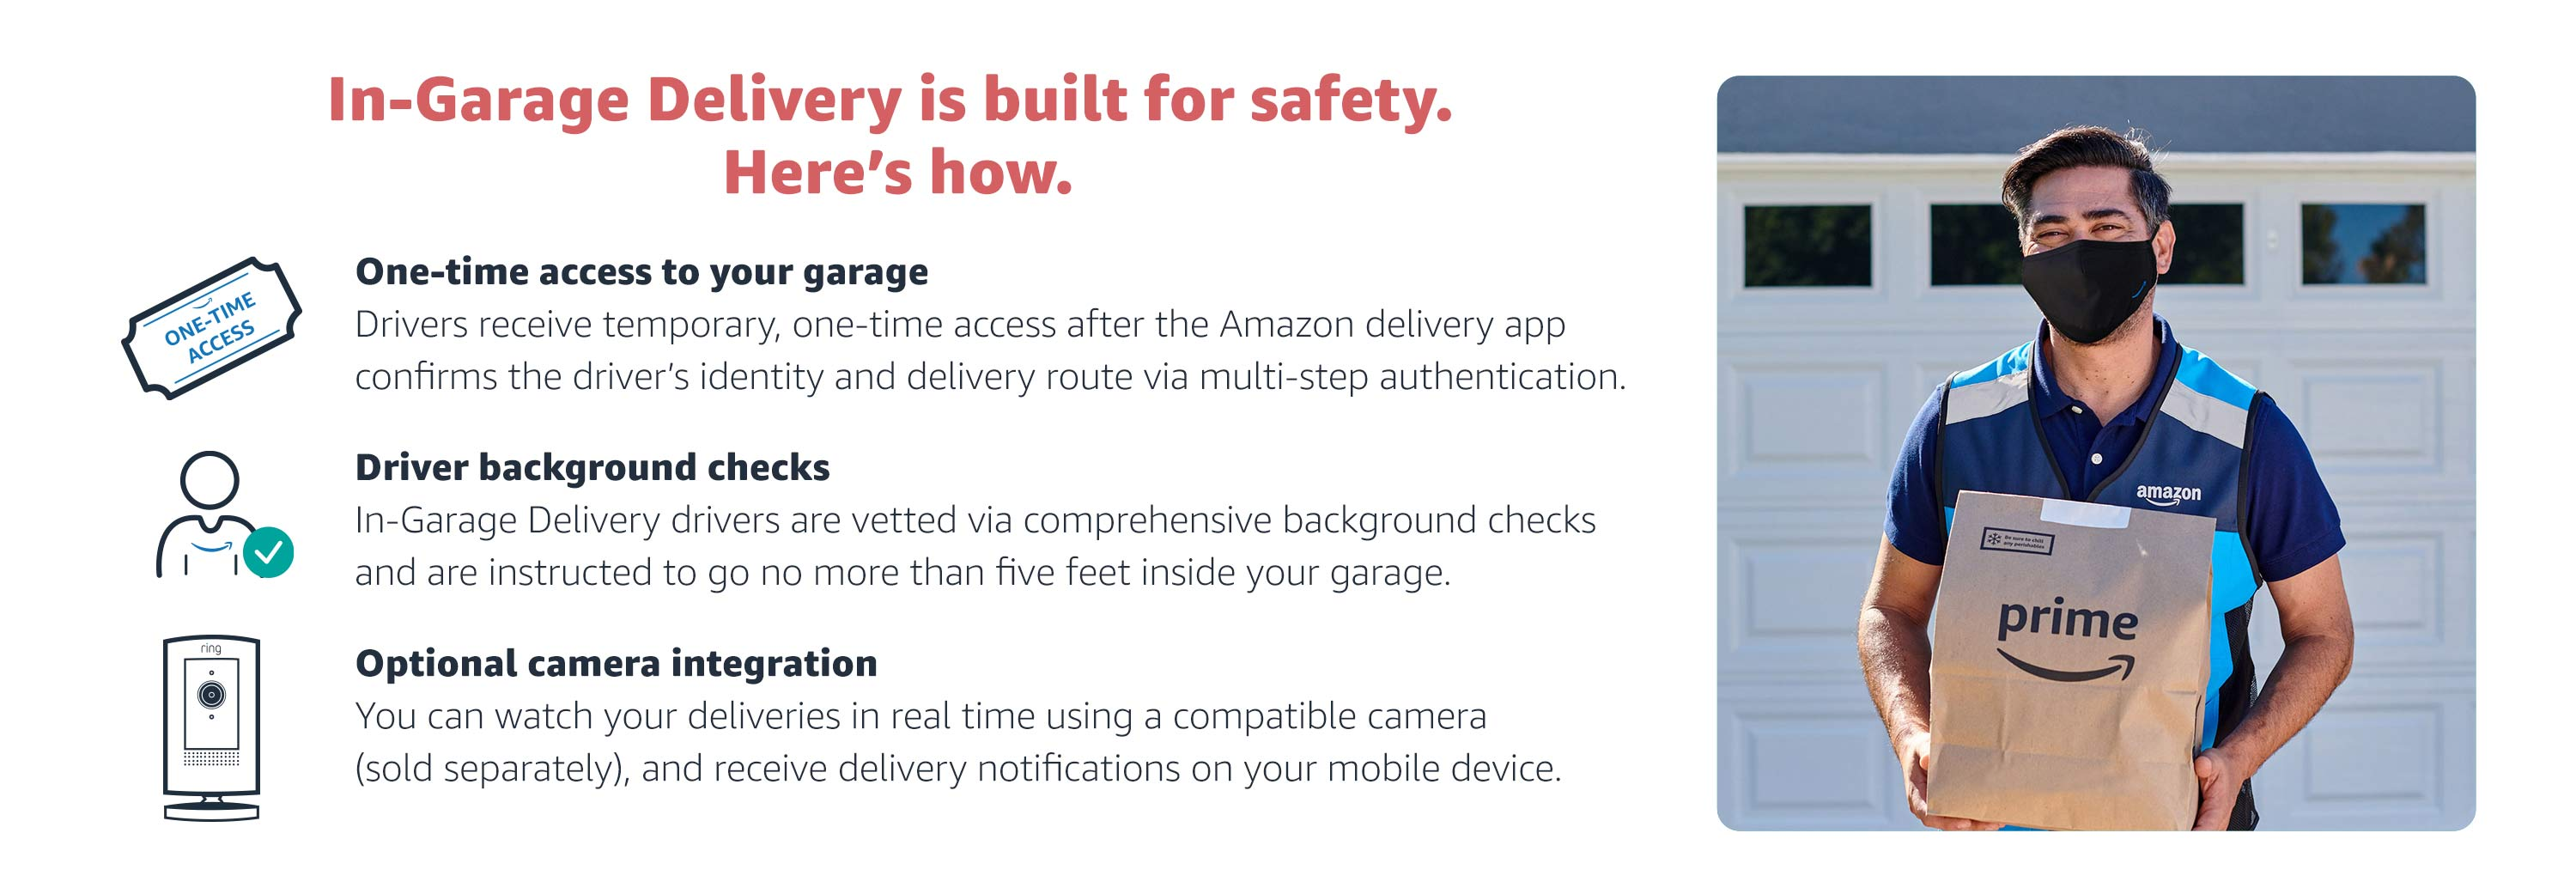 In-Garage Delivery is built for safety with one-time access to your garage and driver background checks.